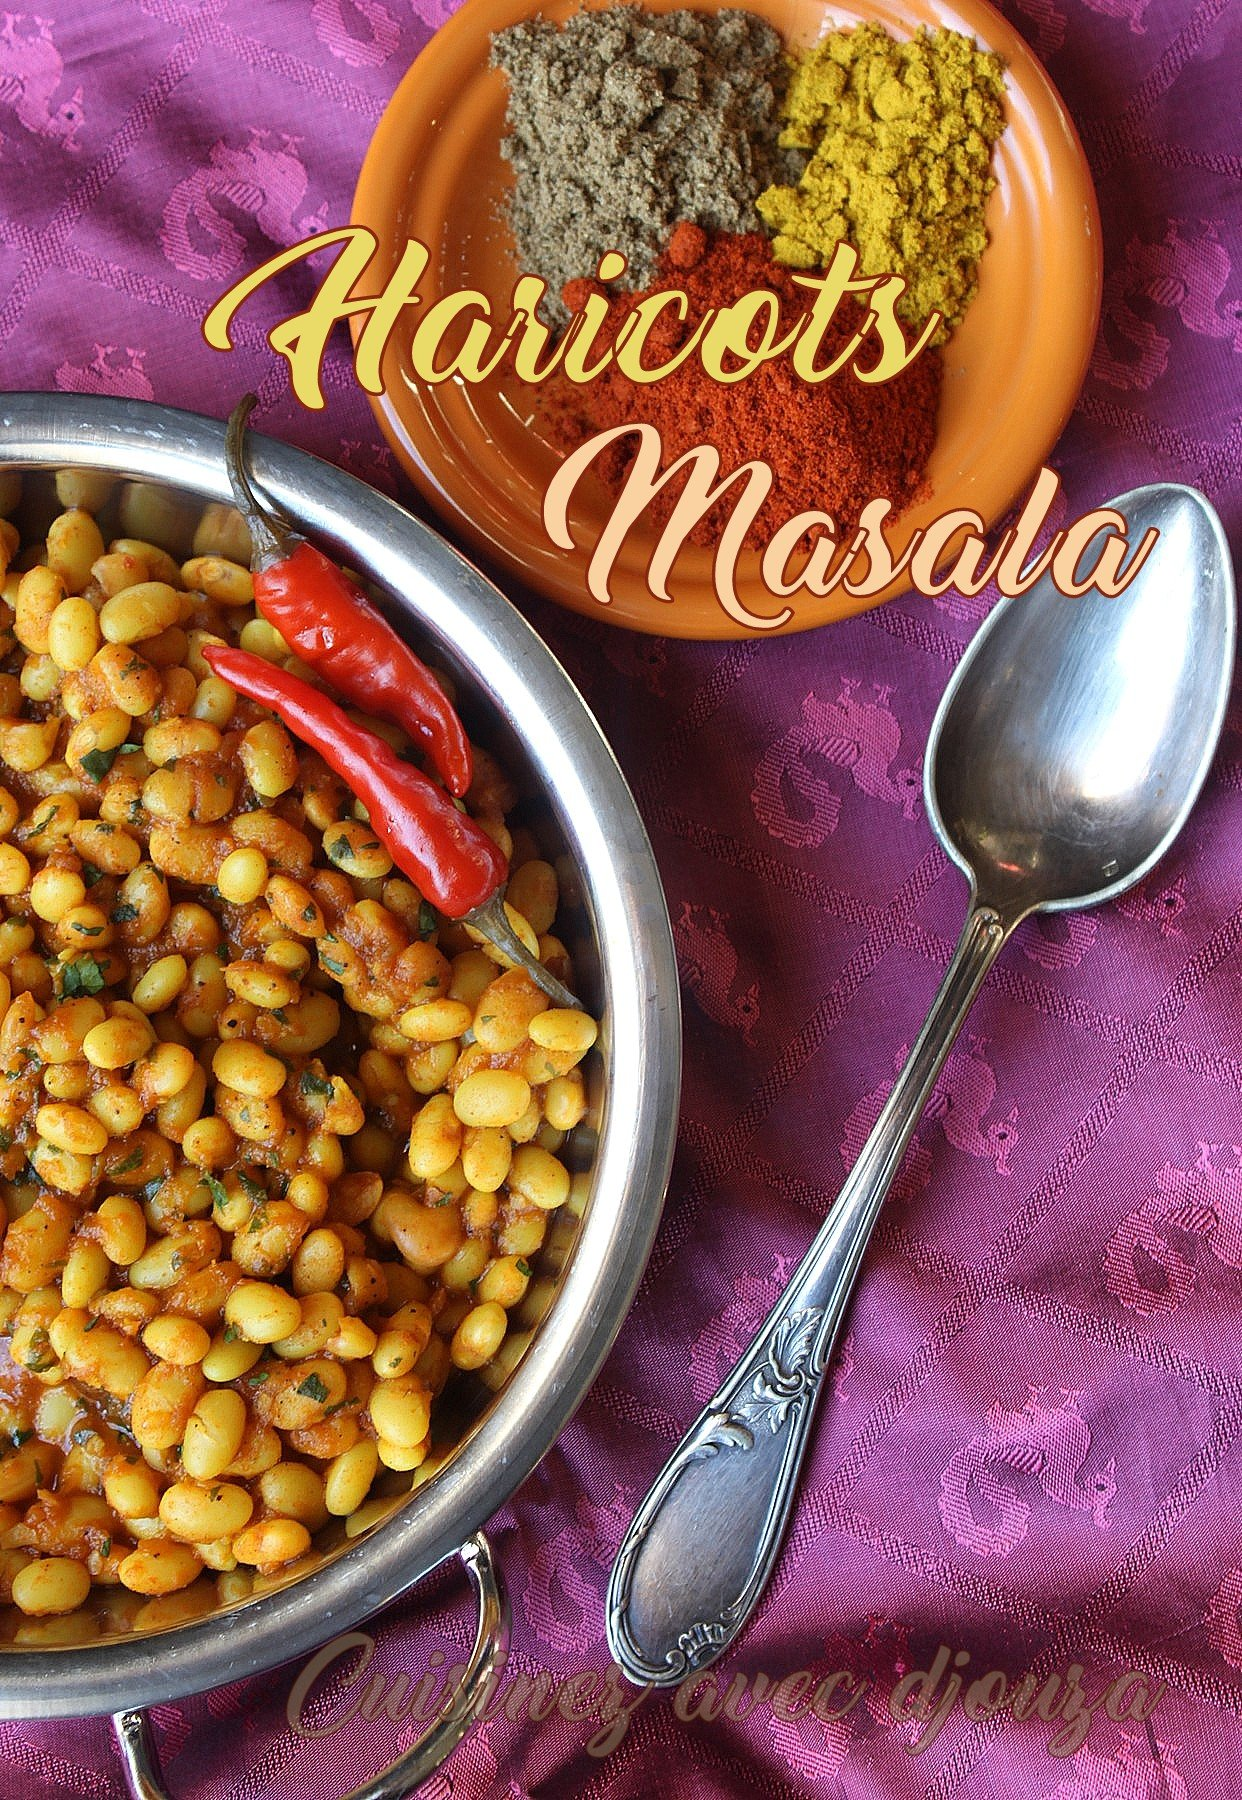 Haricots blancs masala recette indienne